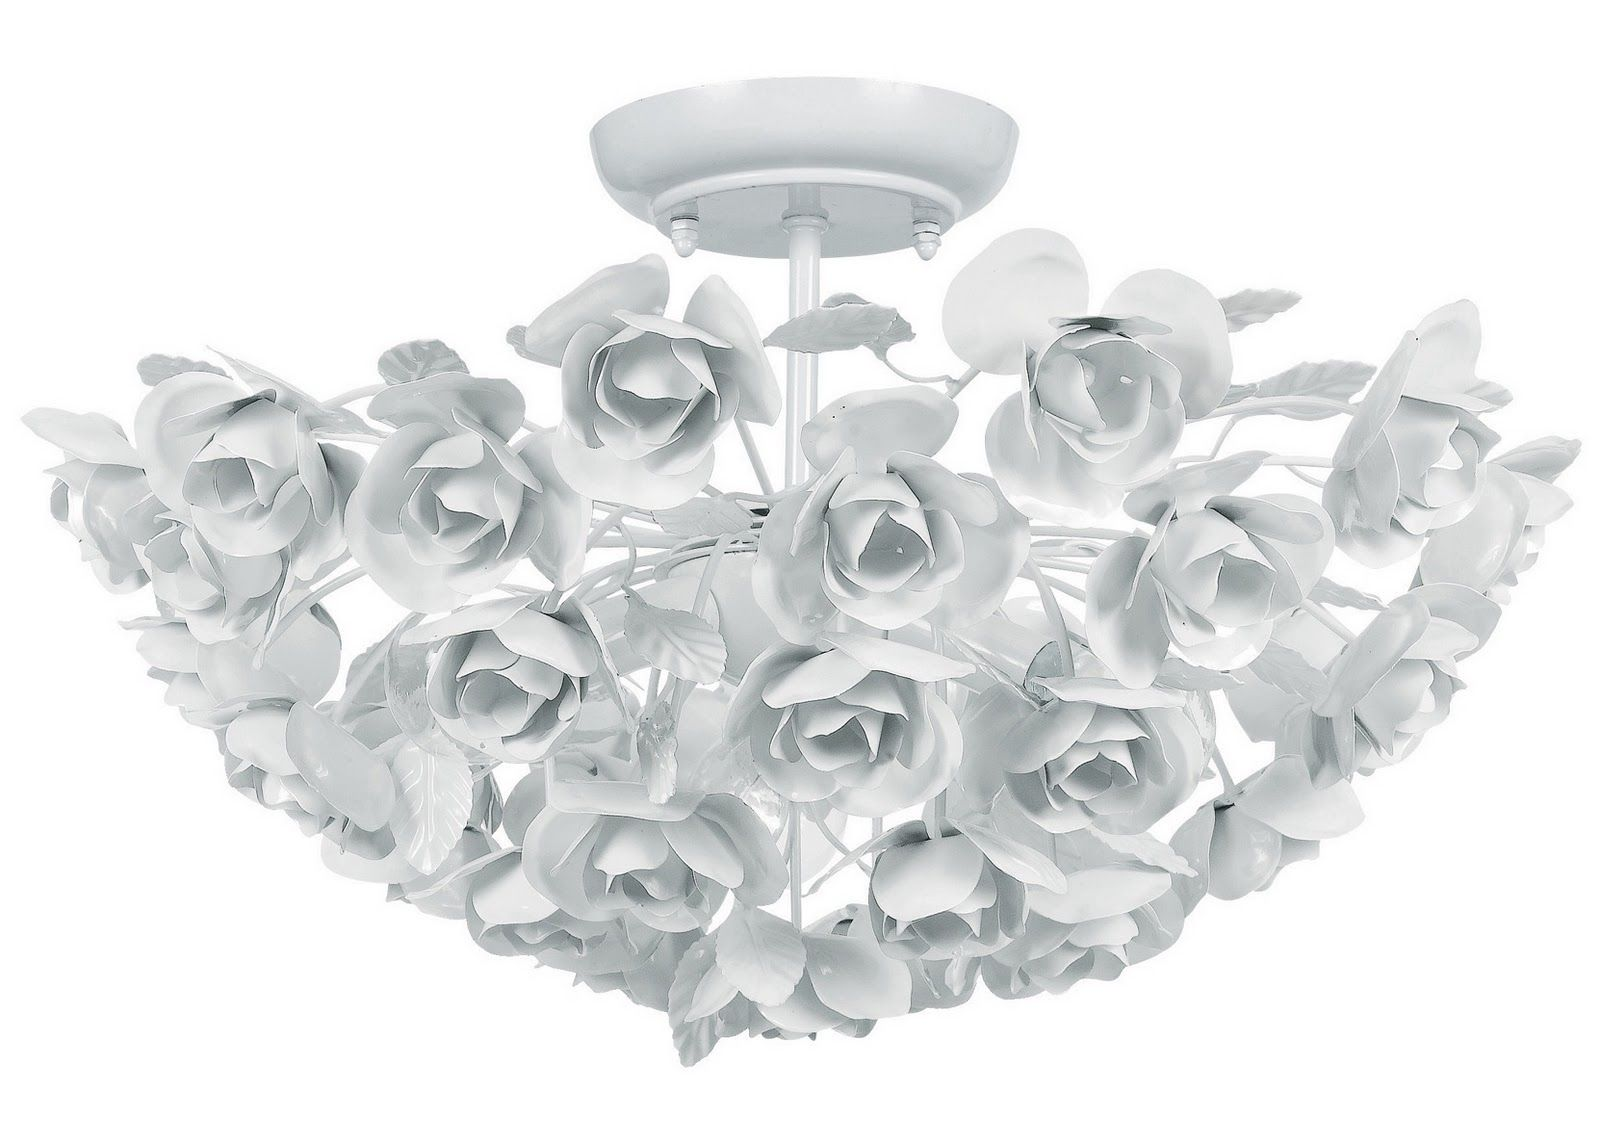 Ceiling mounted shabby chic light fixture google search emilys ceiling mounted shabby chic light fixture google search arubaitofo Gallery